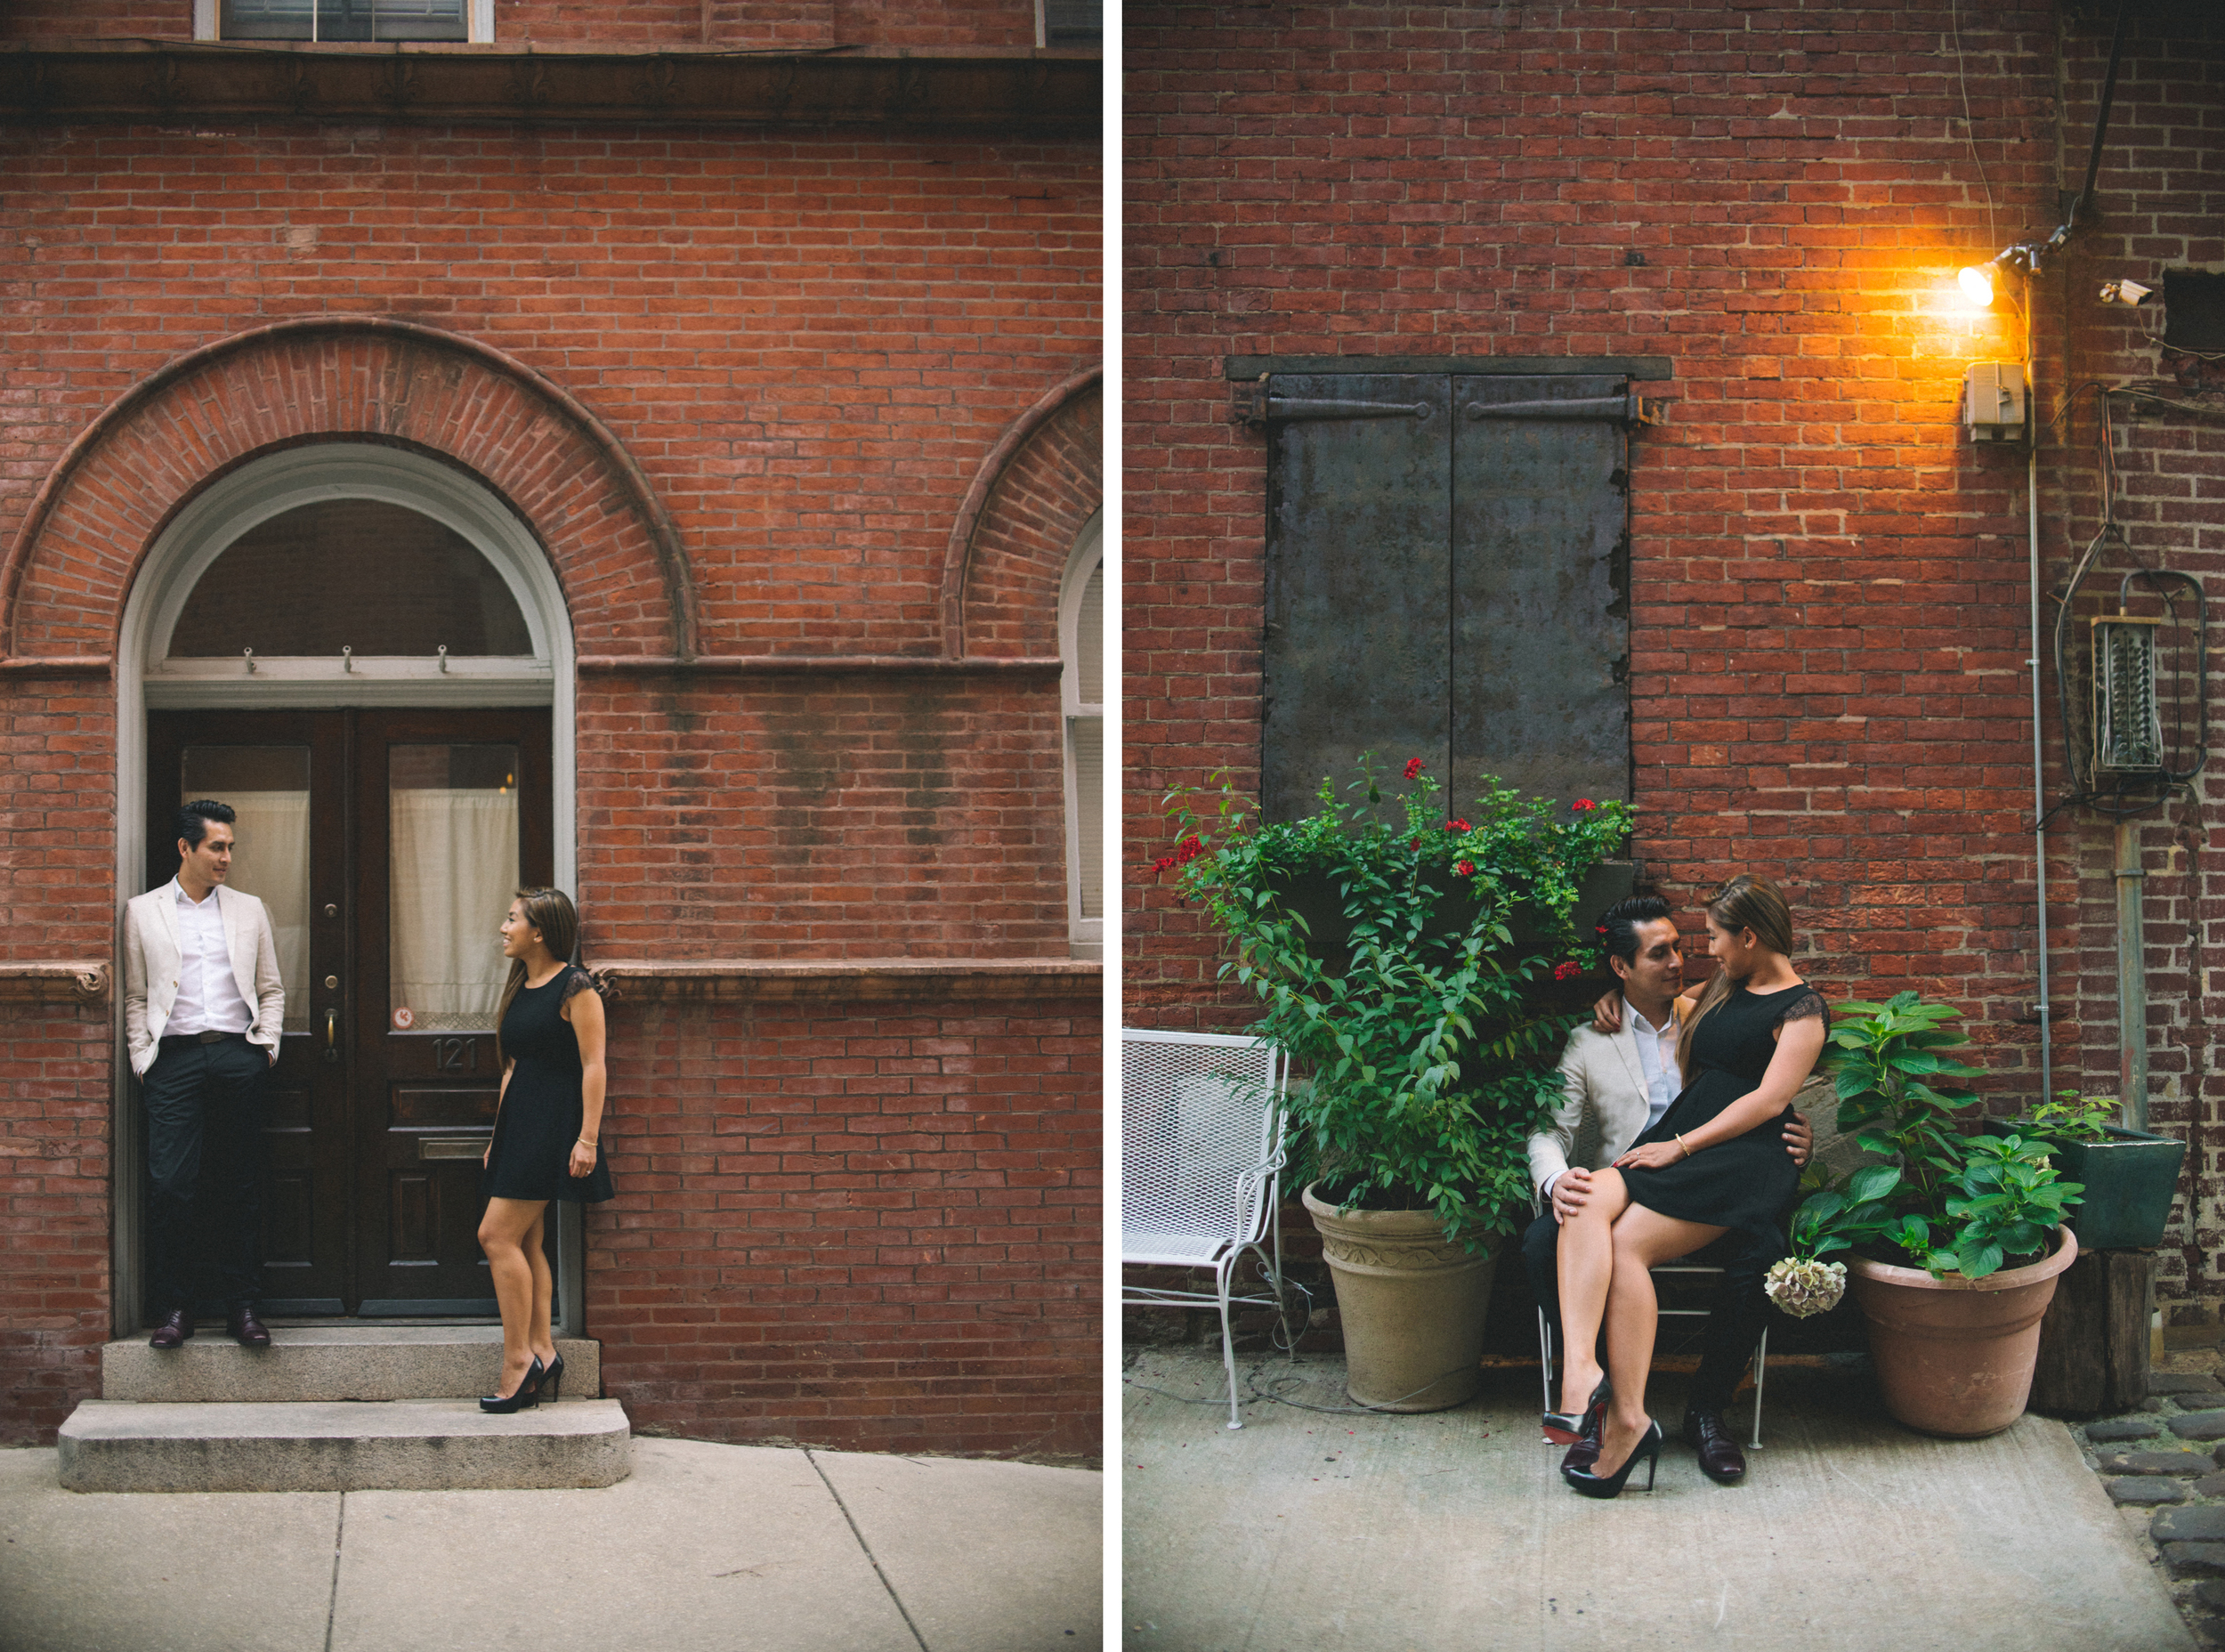 Old-City-Philadelphia-Engagement-Peaberry-Photography-Pennsylvania-Wedding-Photographer-007.jpg